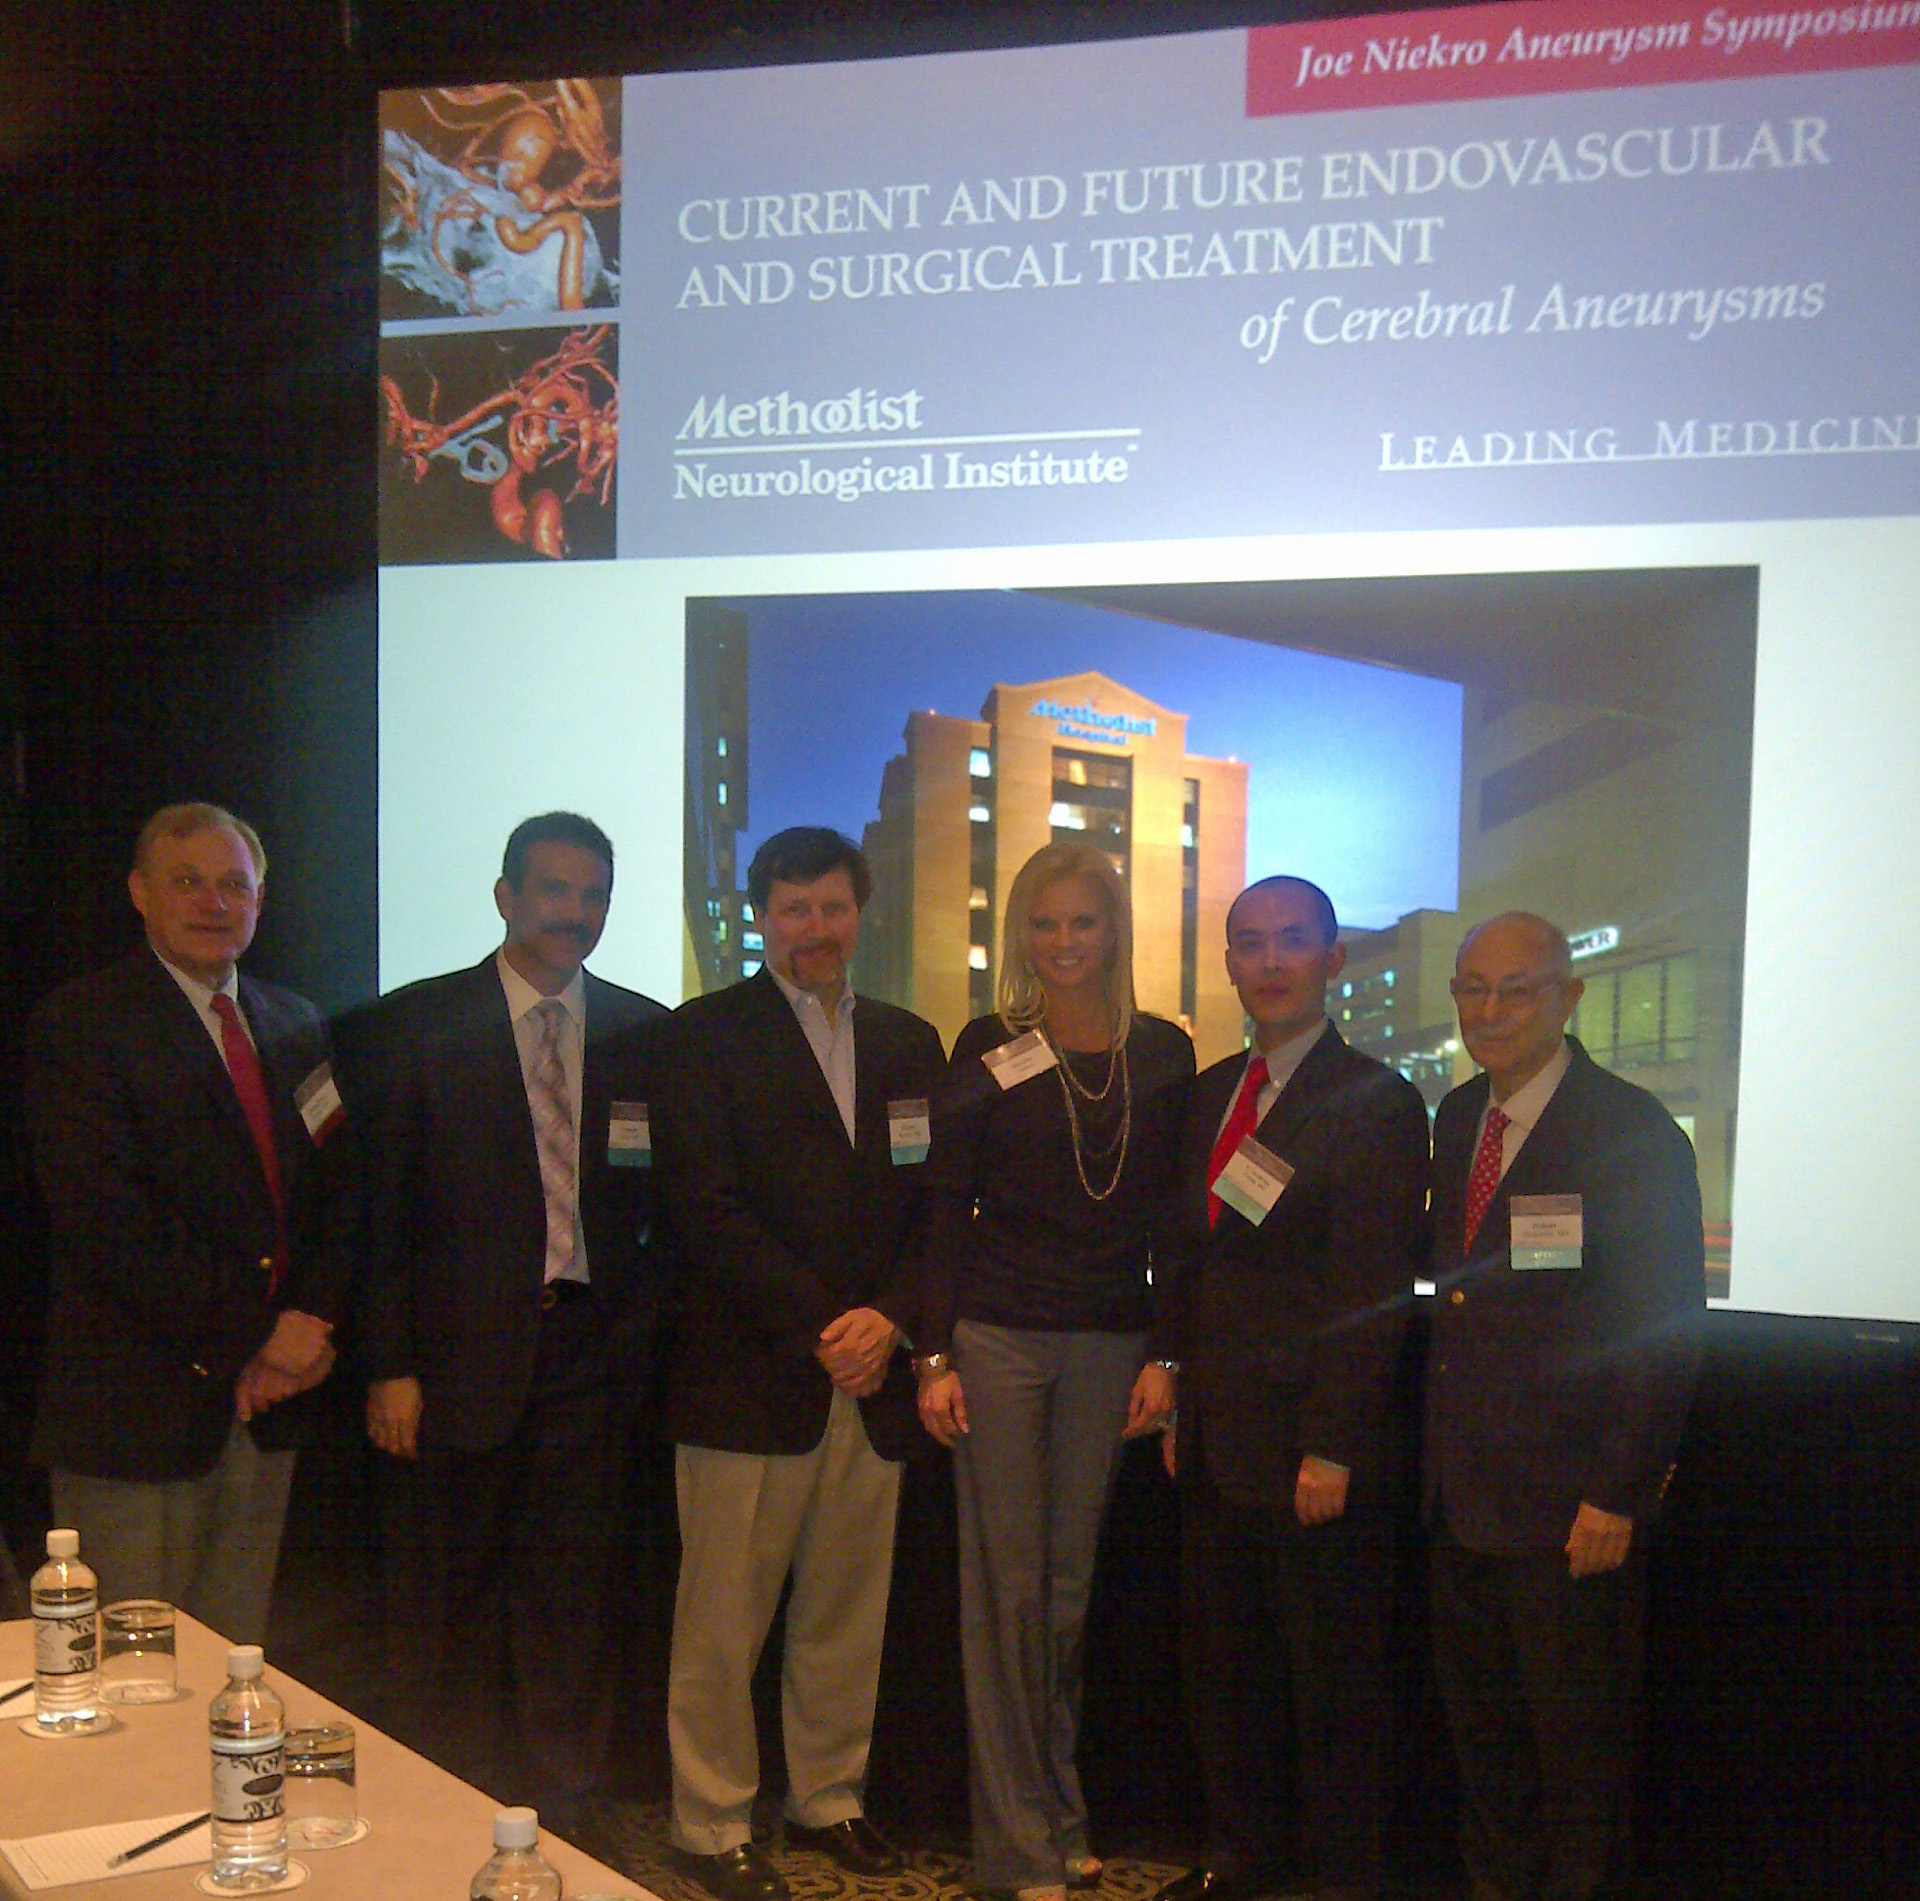 http://www.joeniekrofoundation.com/events/joe-niekro-scientific-symposium/attachment/houston-20120310-00053-r/